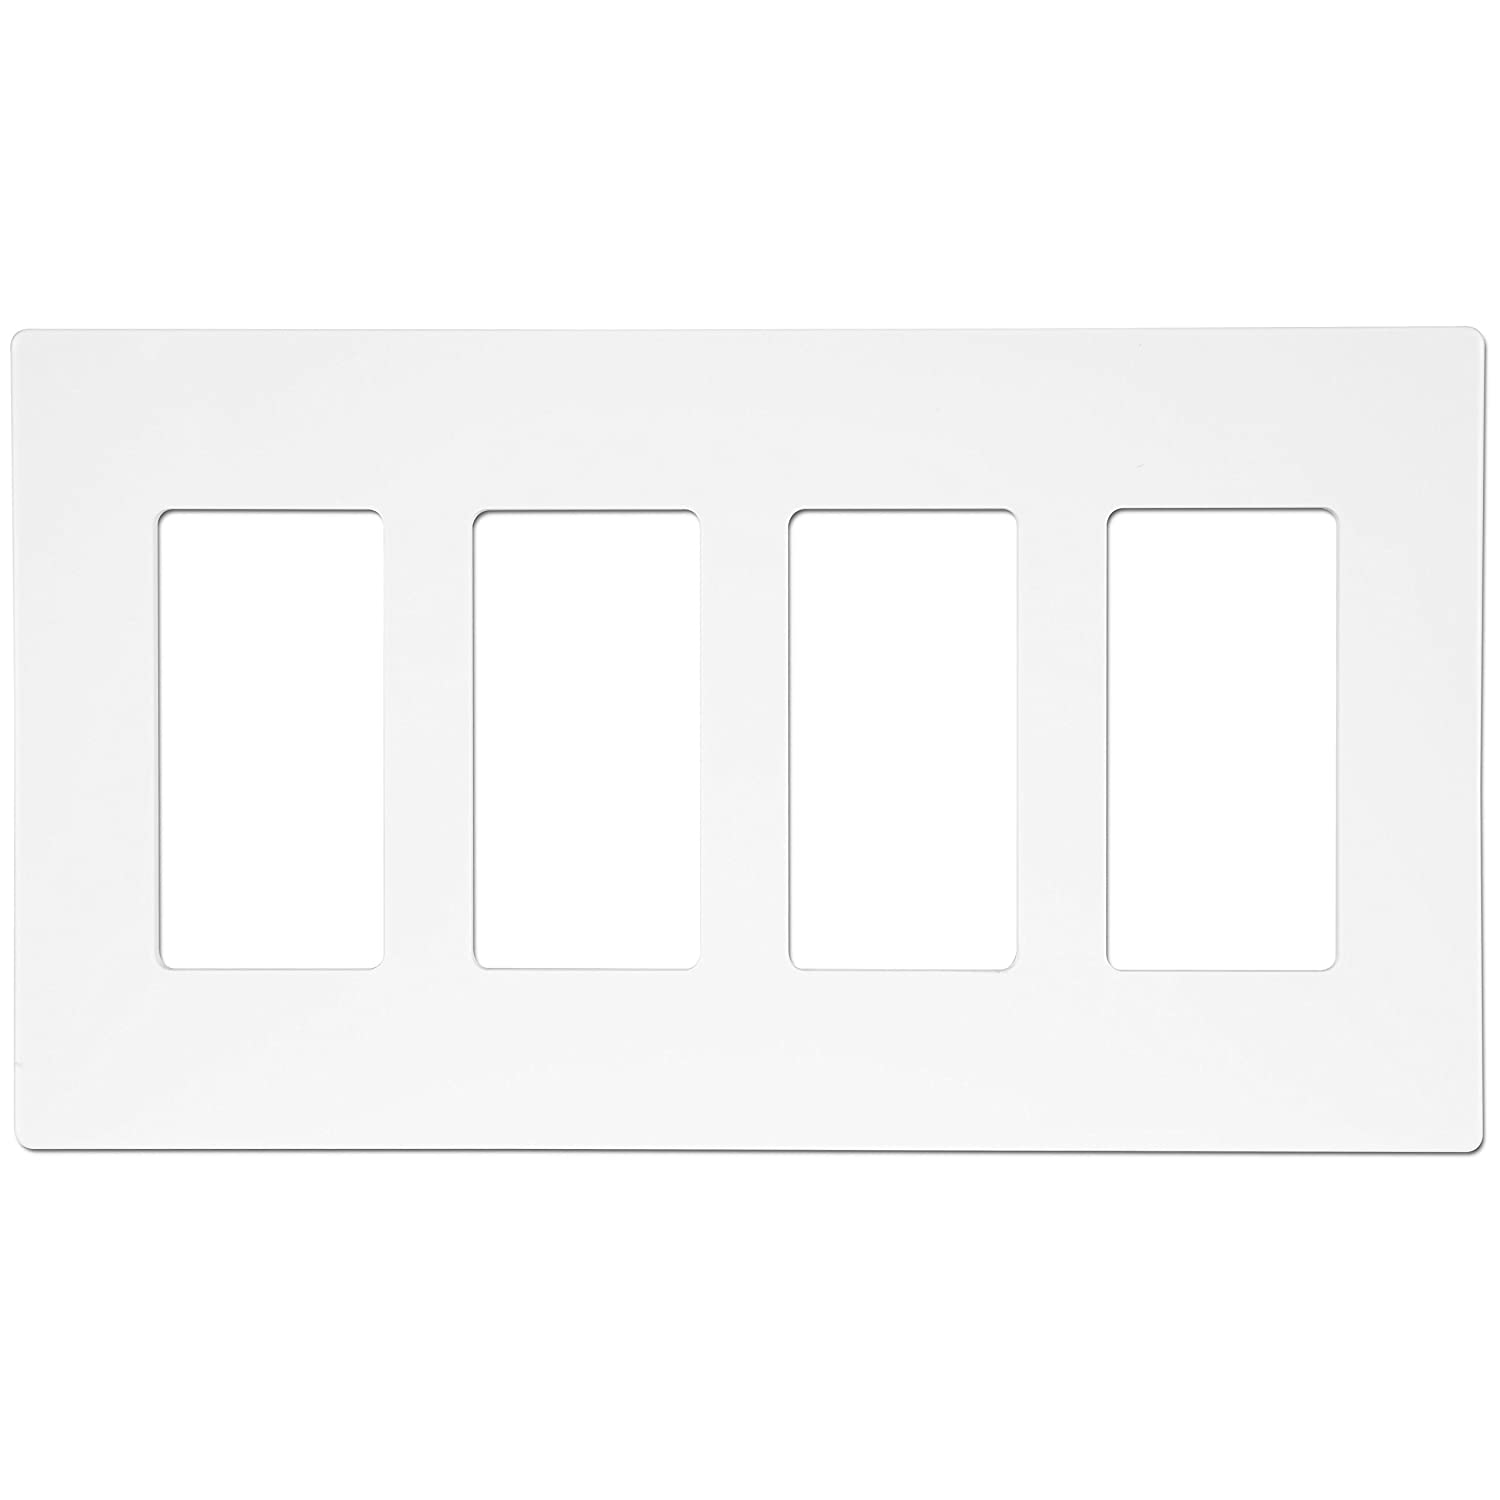 "ENERLITES Screwless Decorator Wall Plates Child Safe Outlet Covers, Size 4-Gang 4.68"" H x 8.30"" L, Unbreakable Polycarbonate Thermoplastic, SI8834-W, White"